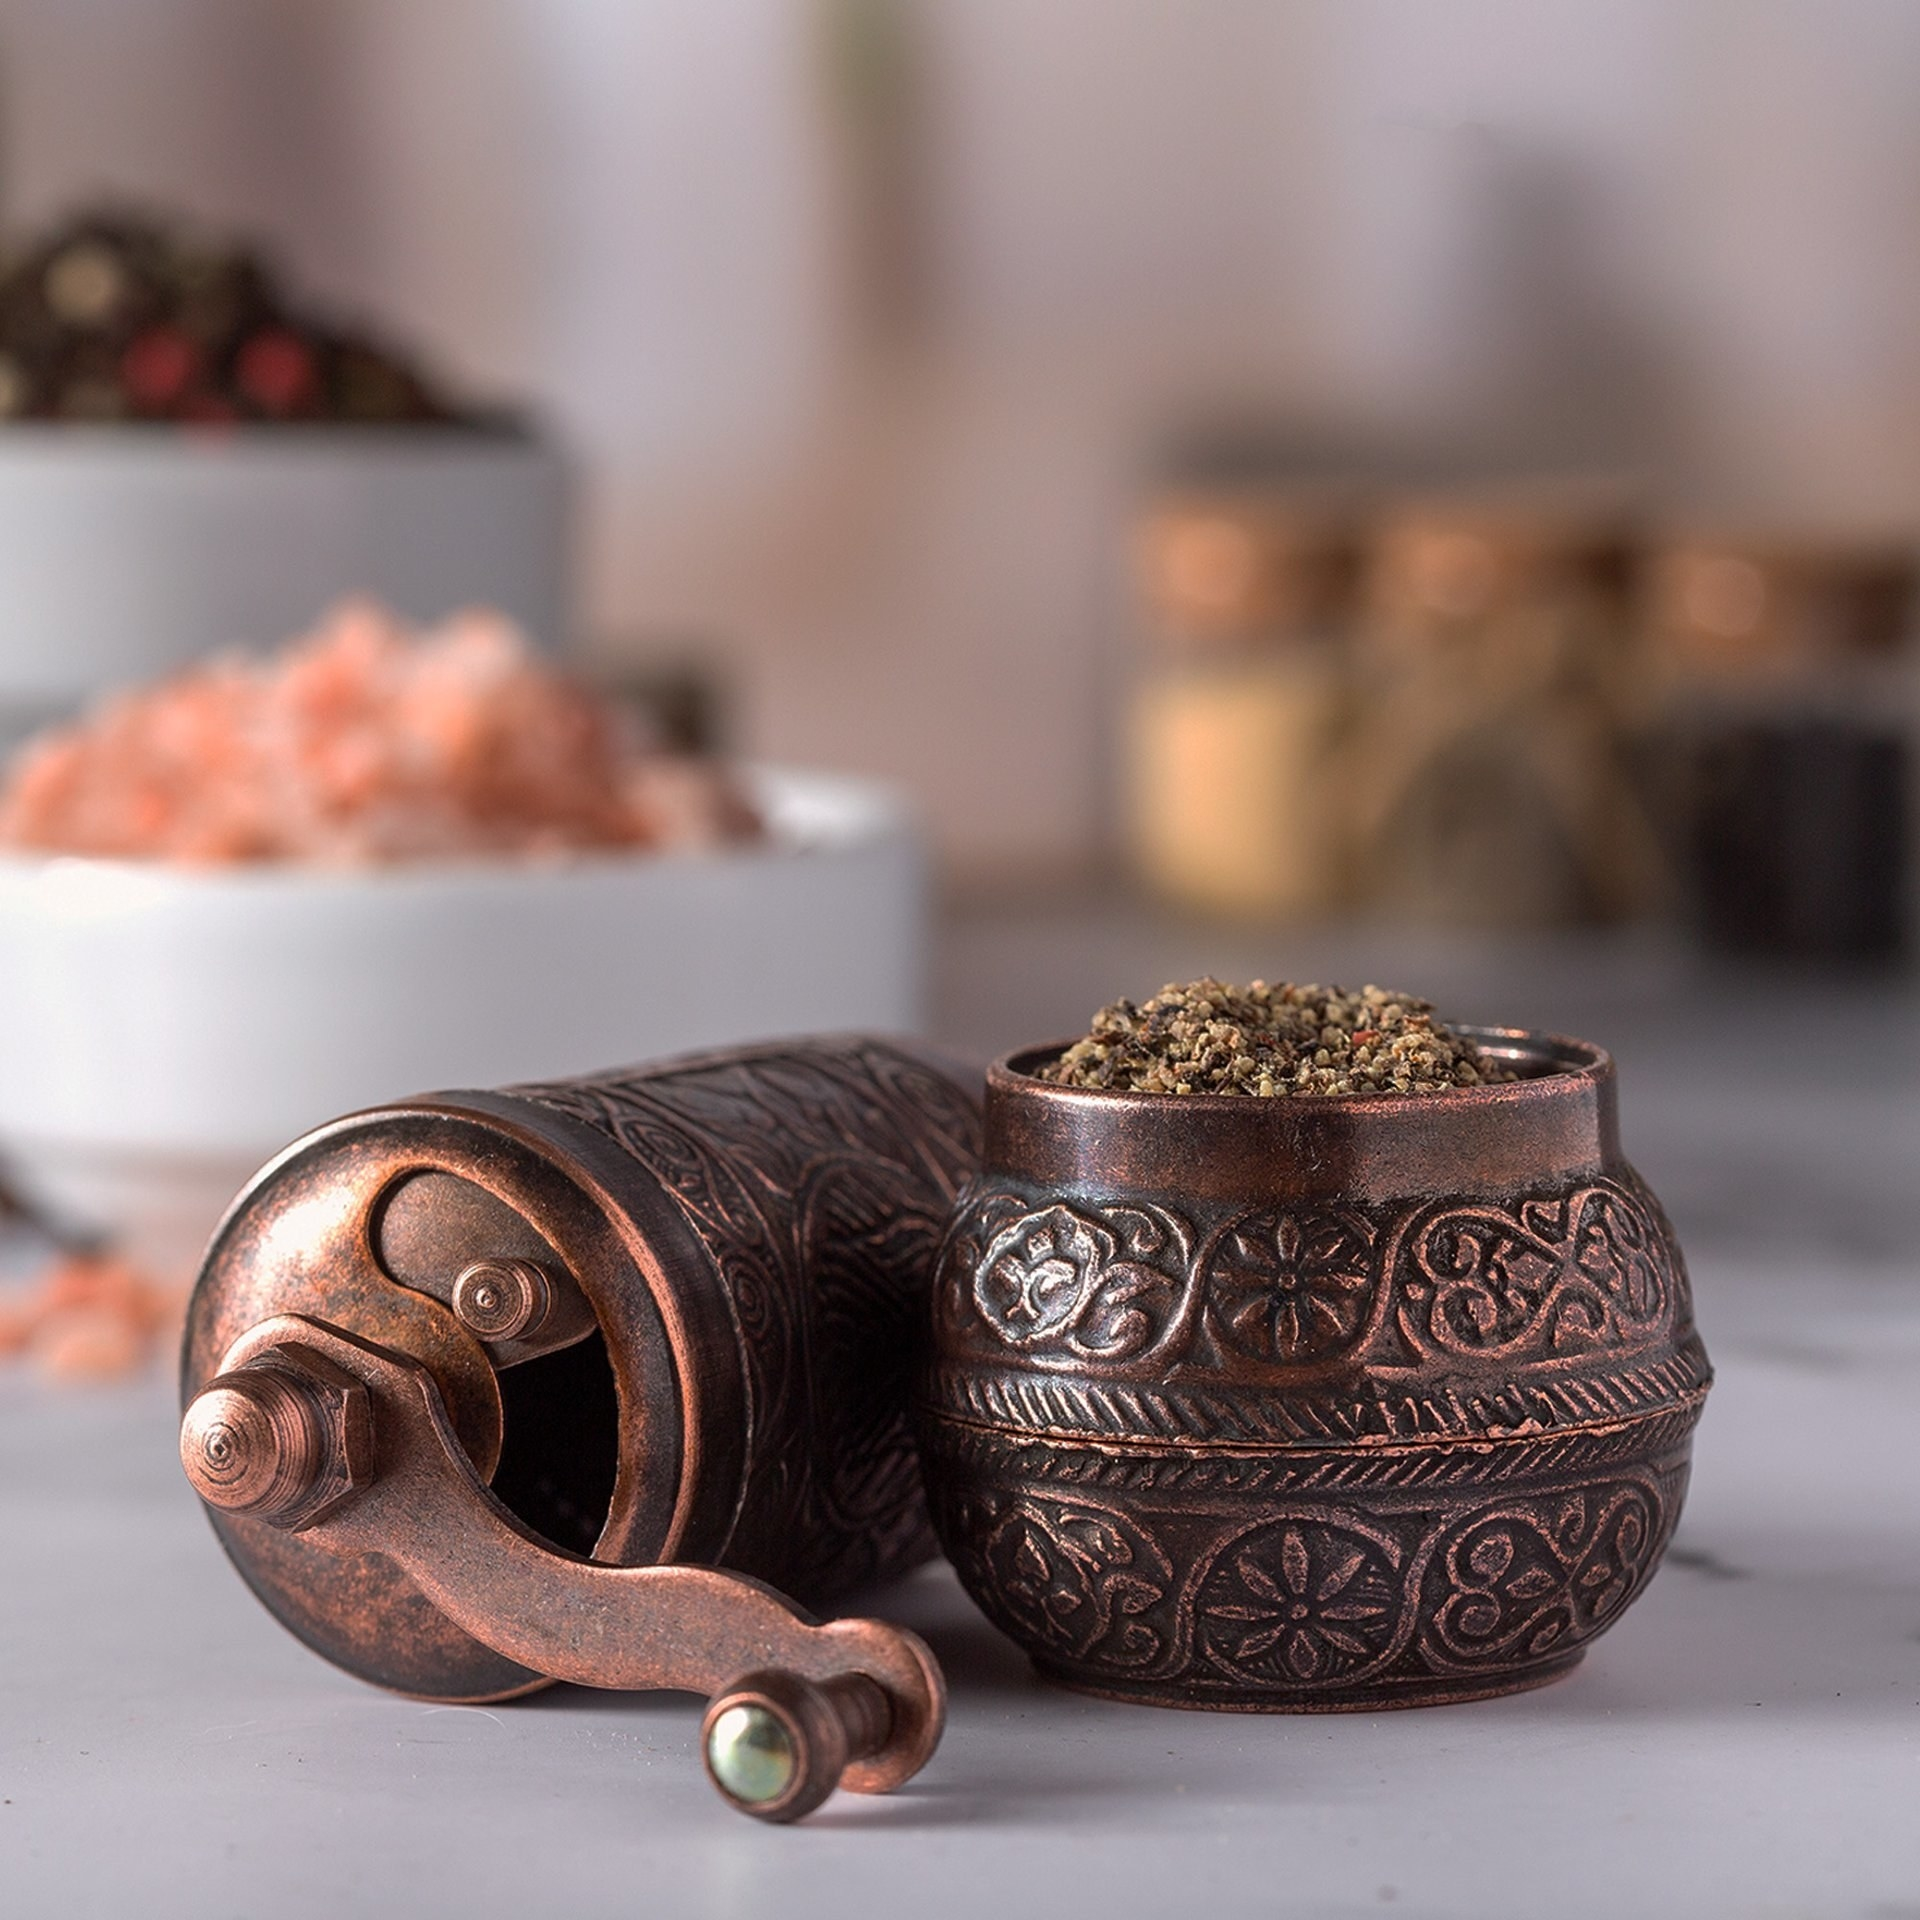 the black pepper and spice grinder